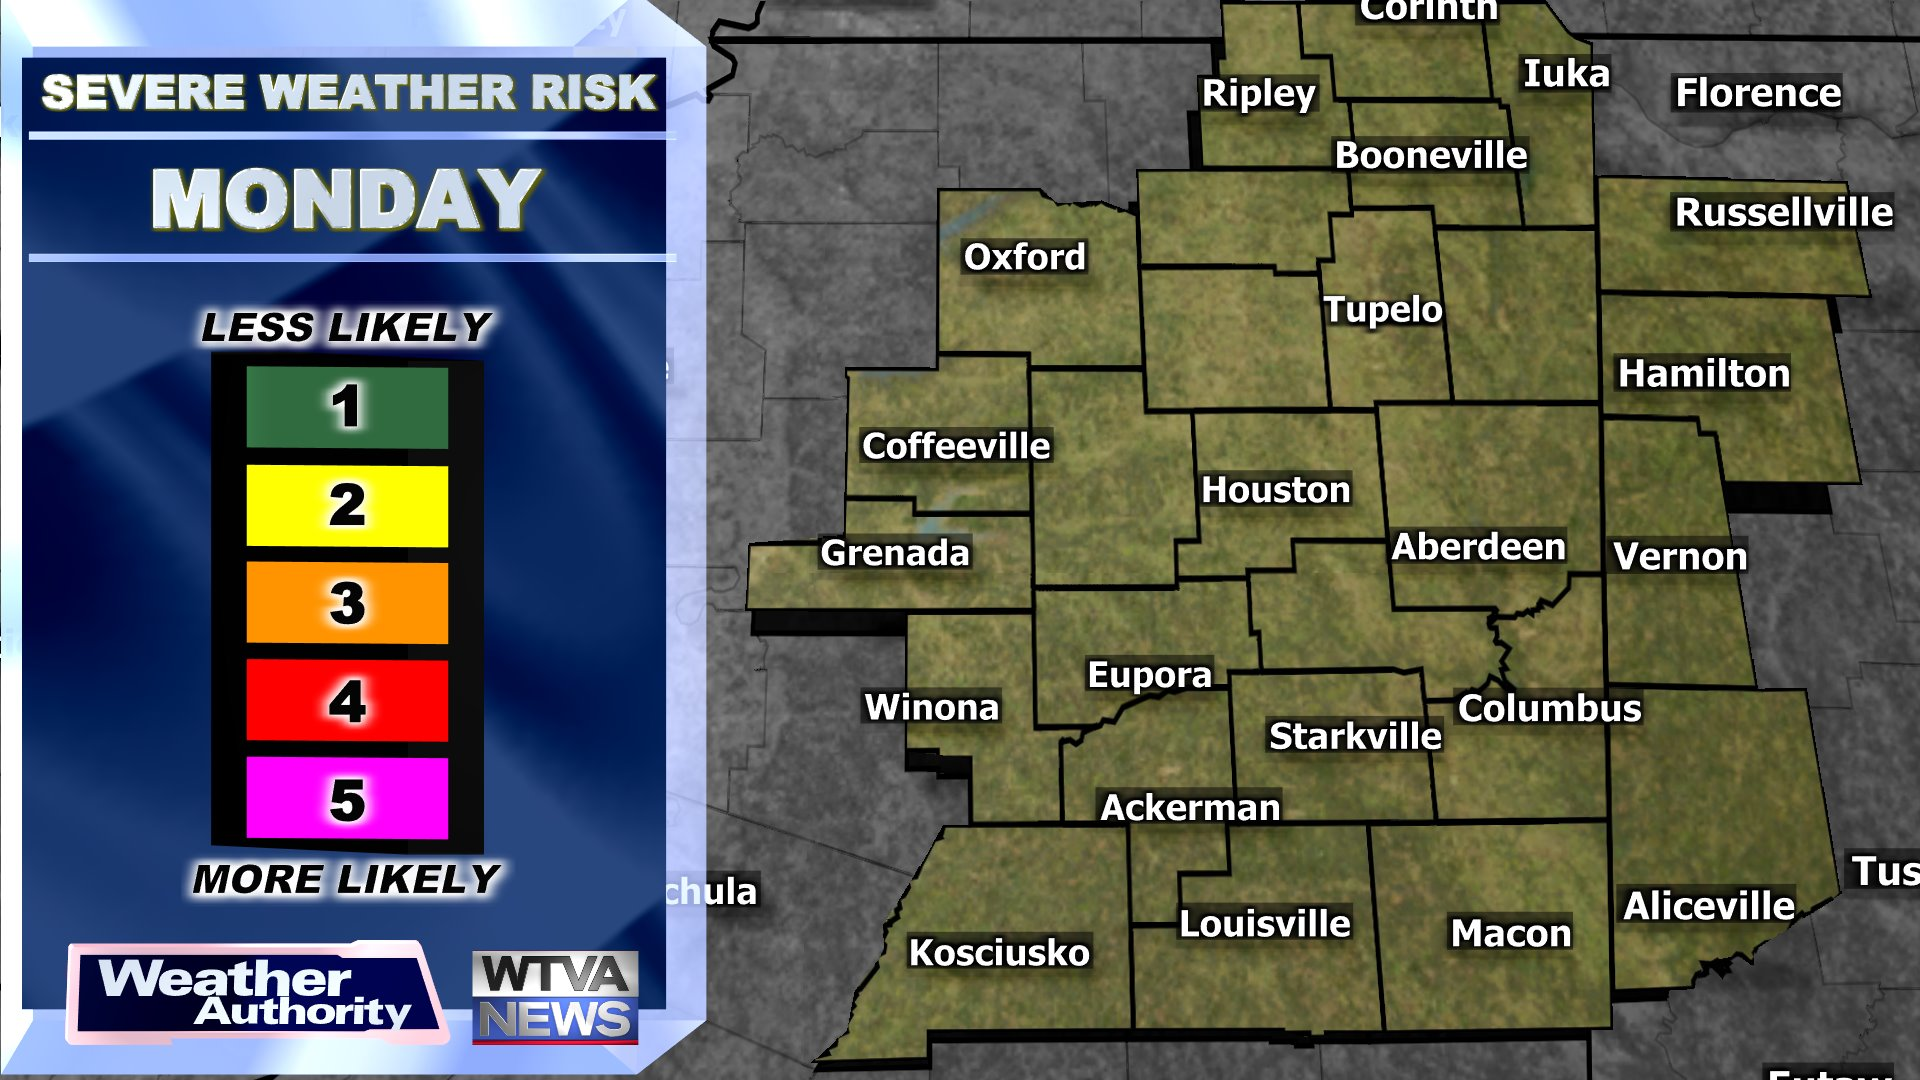 Day%203%20Severe%20Weather%20Risk